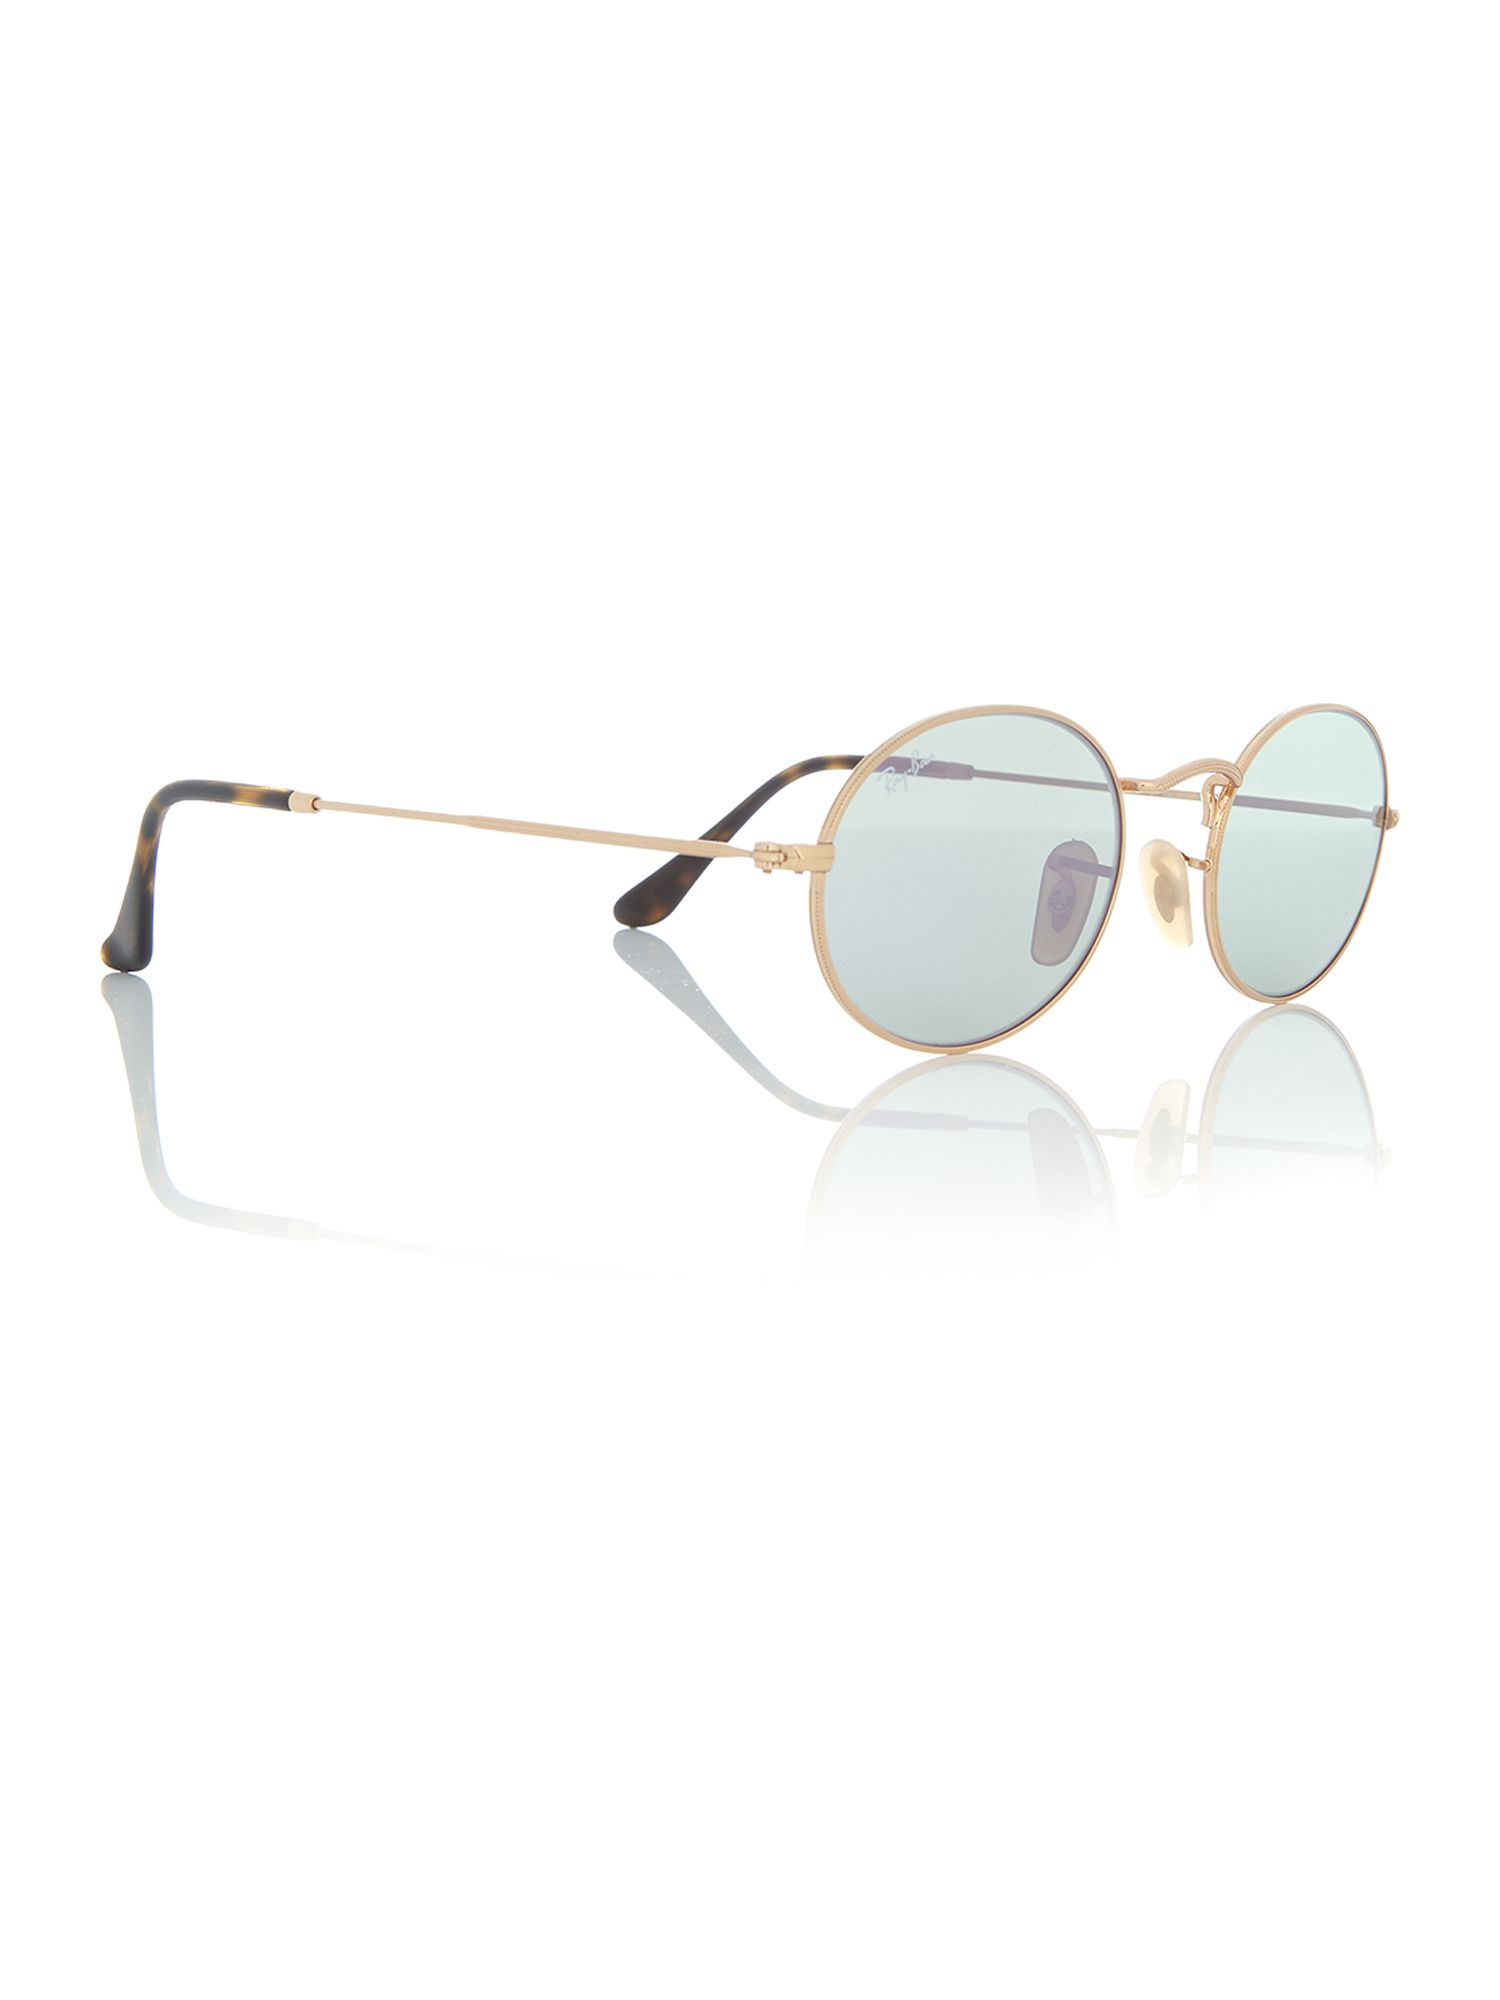 Ray Ban Scam